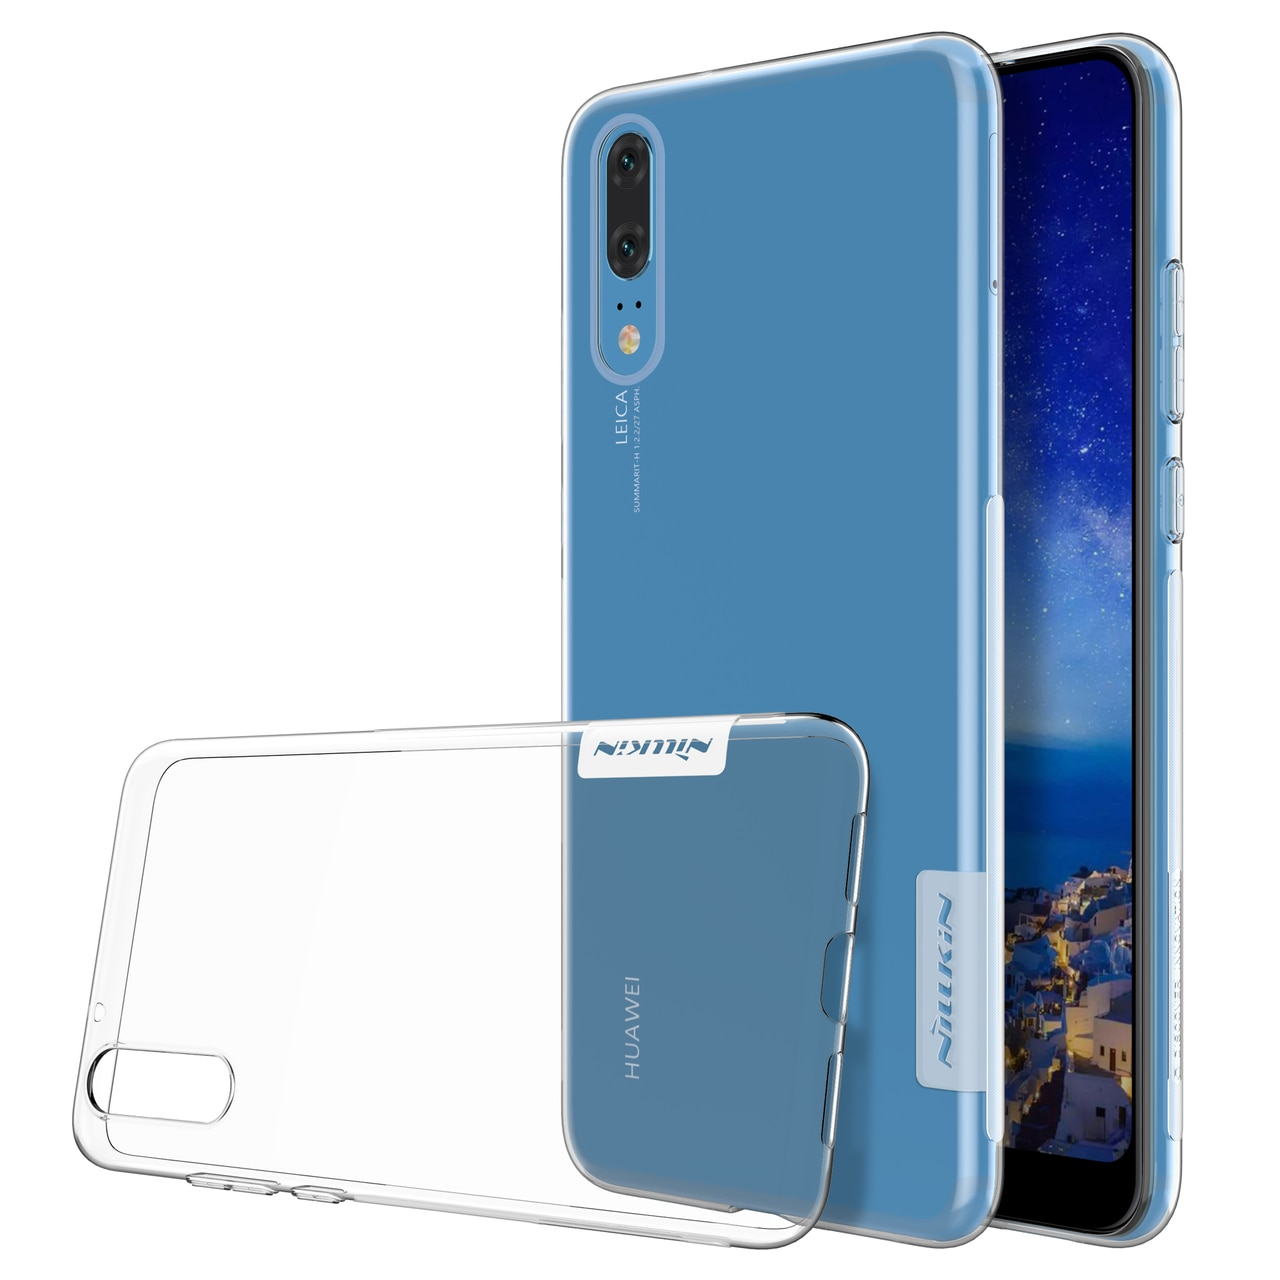 Huawei P20 Premium Silicon Cover by Nillkin - Transparent